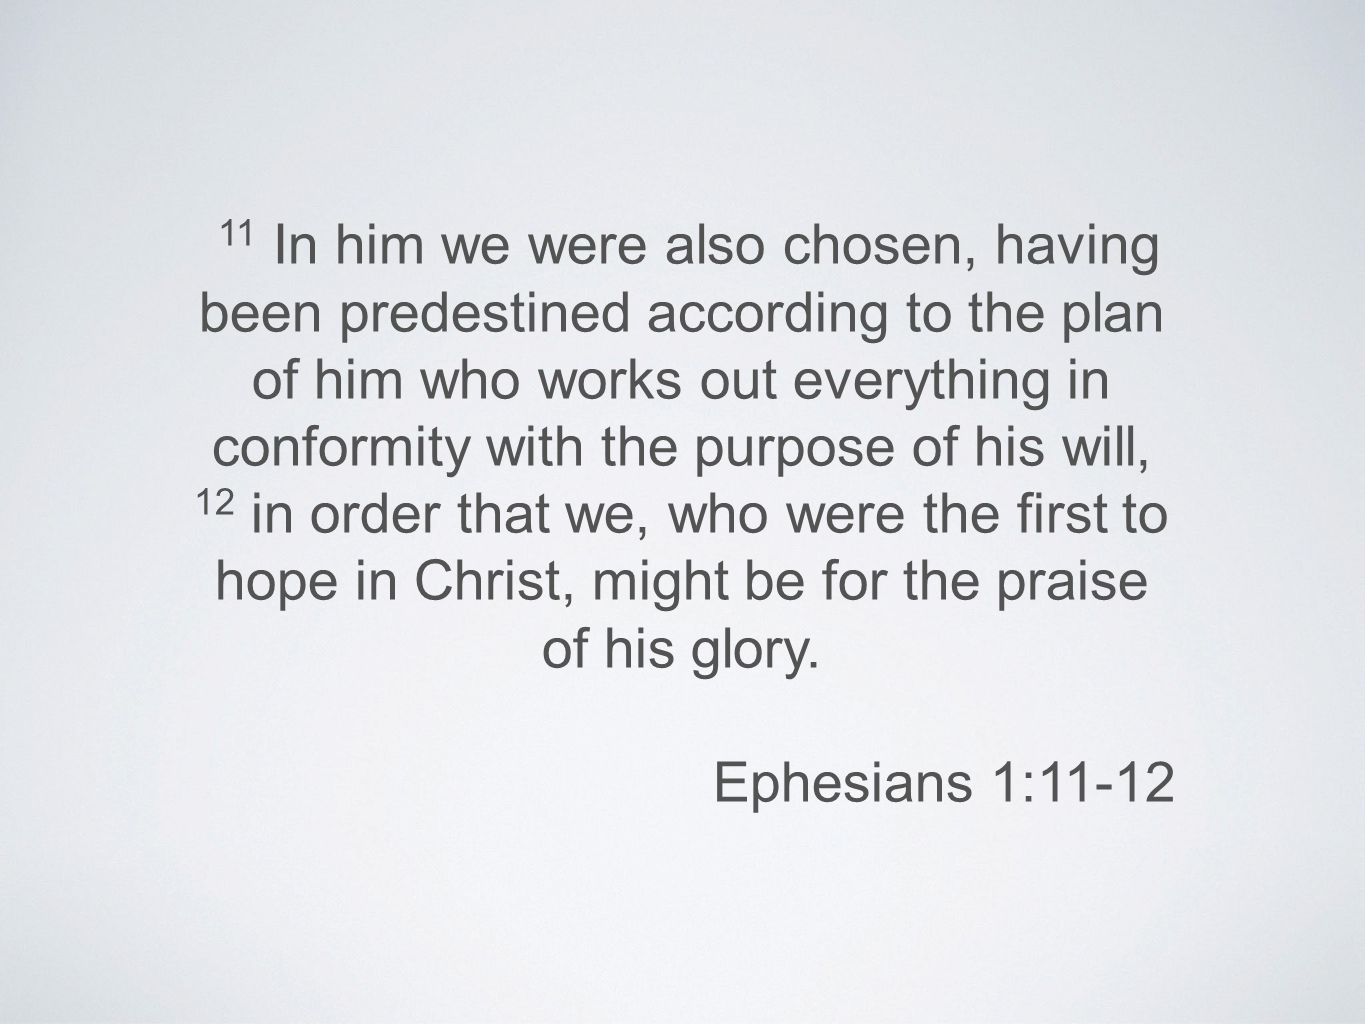 11 In him we were also chosen, having been predestined according to the plan of him who works out everything in conformity with the purpose of his will, 12 in order that we, who were the first to hope in Christ, might be for the praise of his glory.